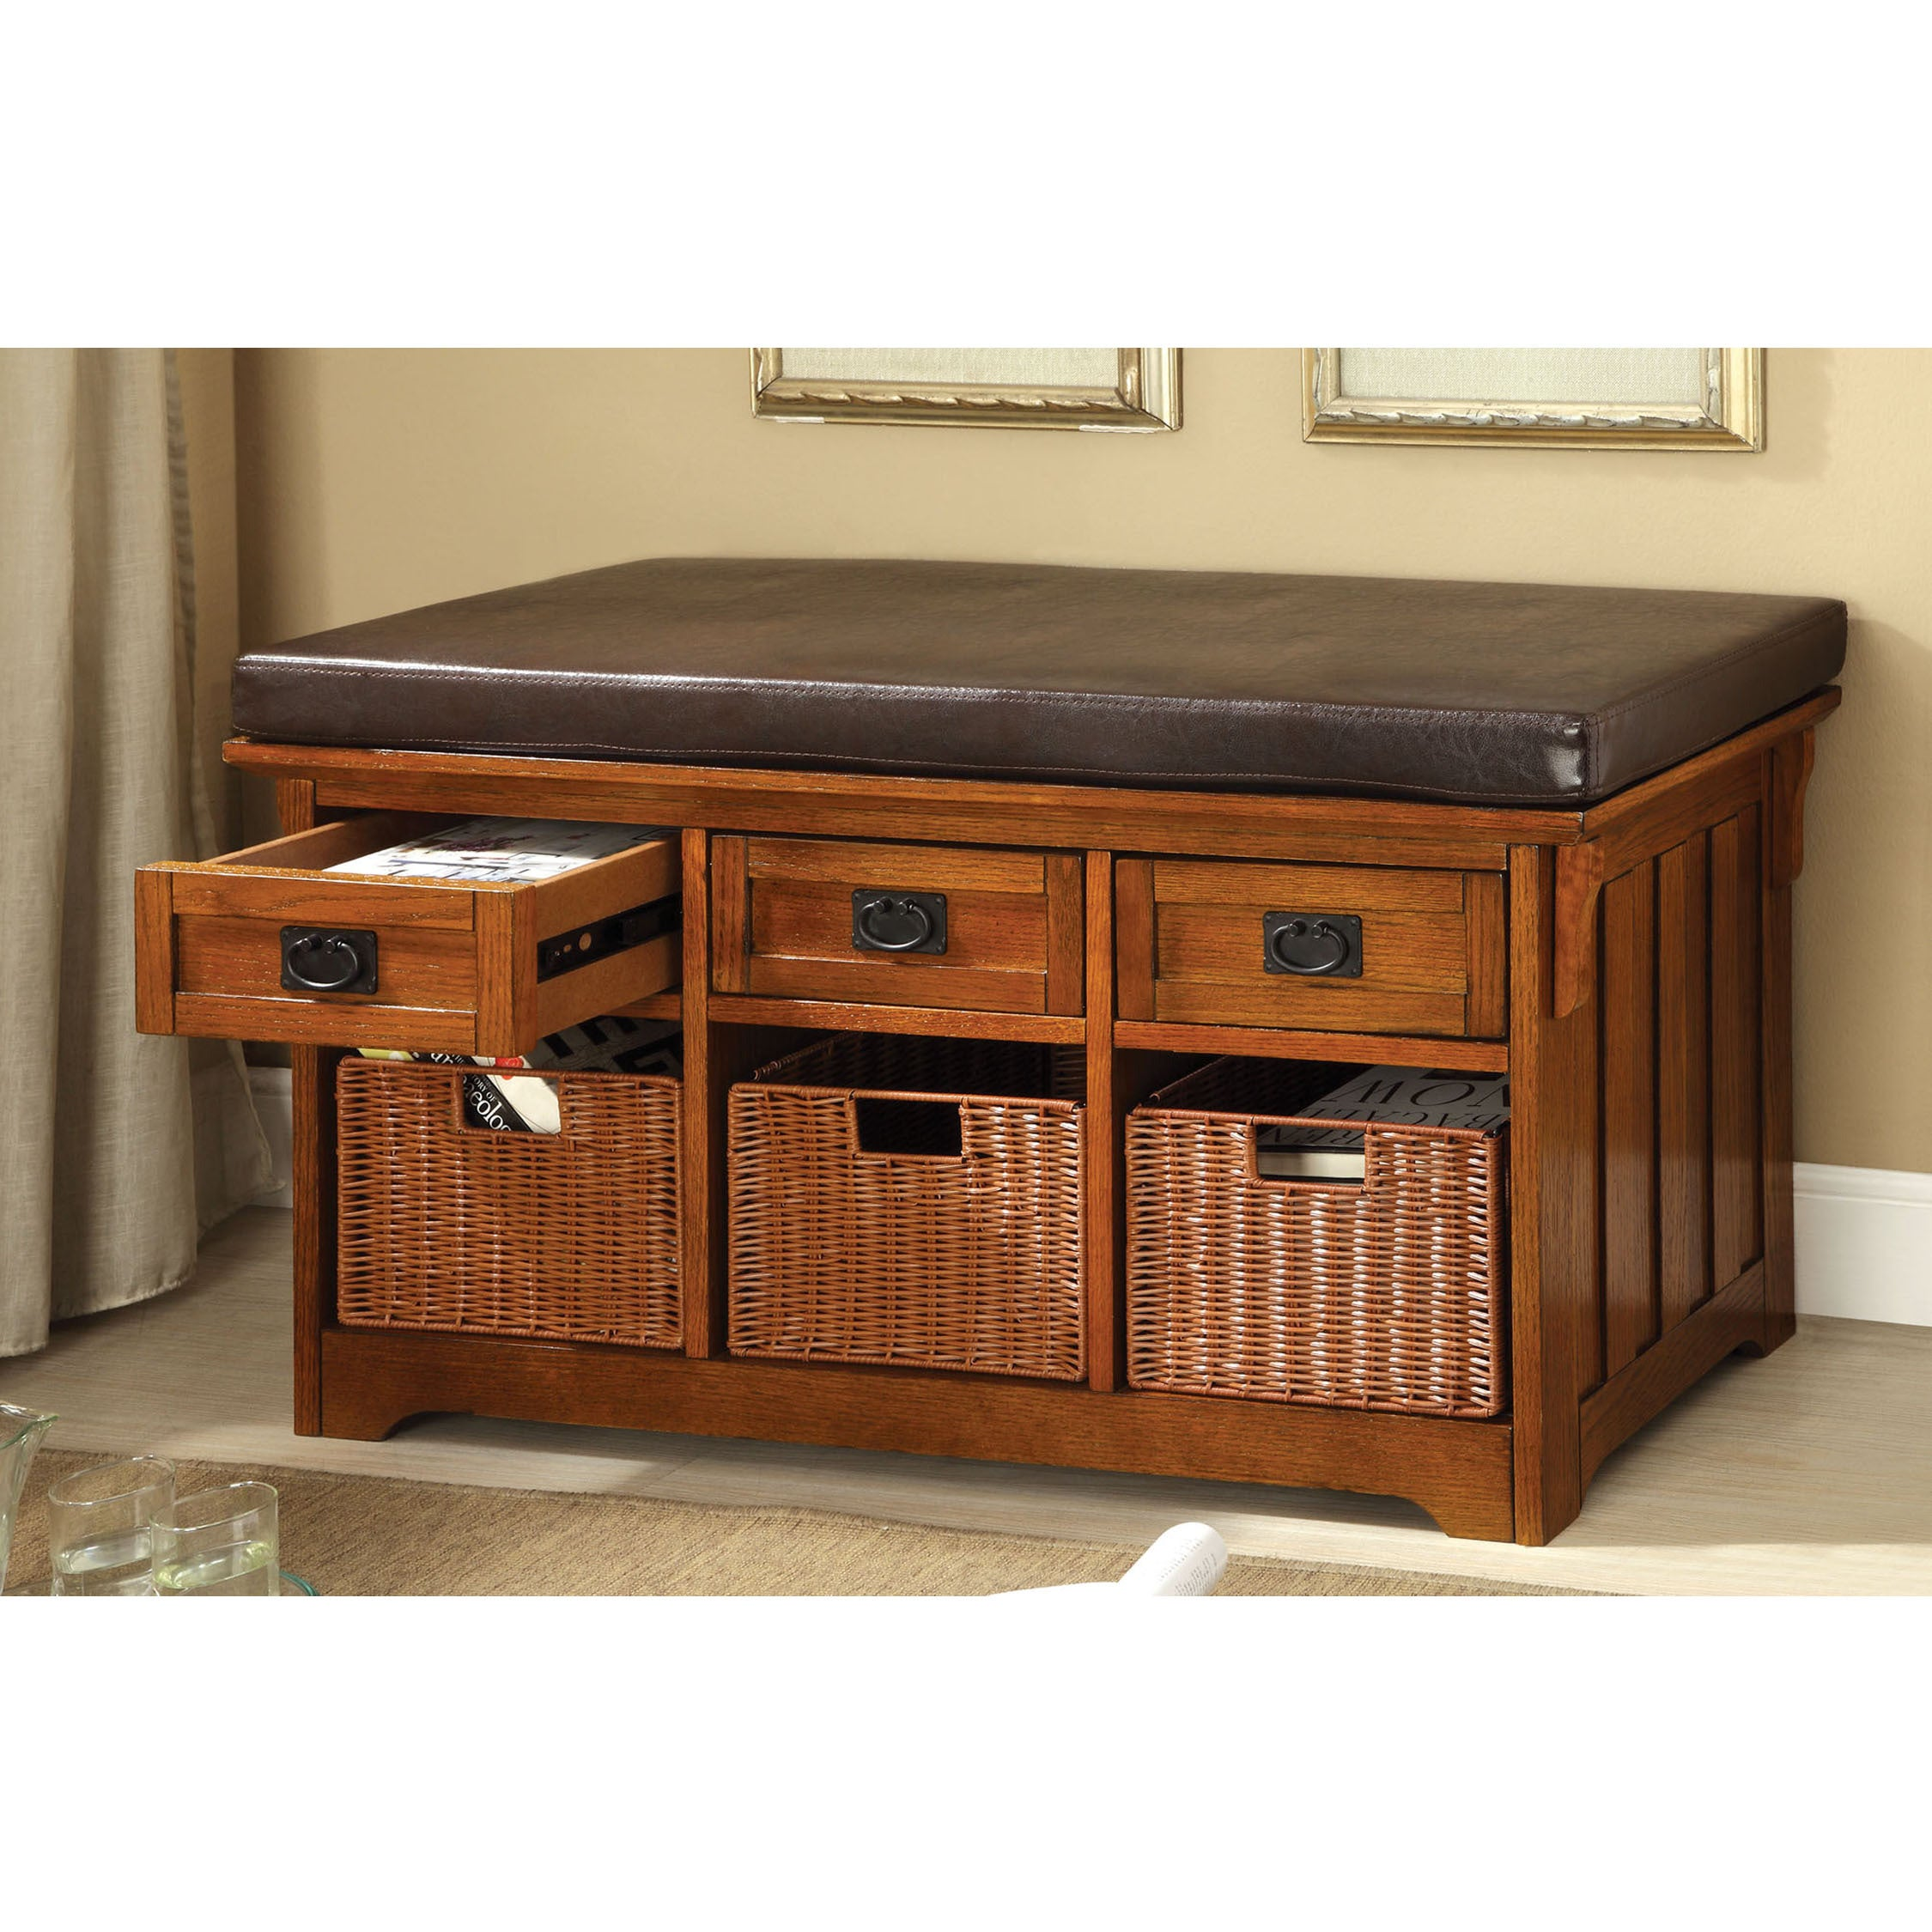 benches latest storage with drawer drawers inside indoor bench file three decorative upholstered wooden cabinet bedroom tufted seat furniture entryway window